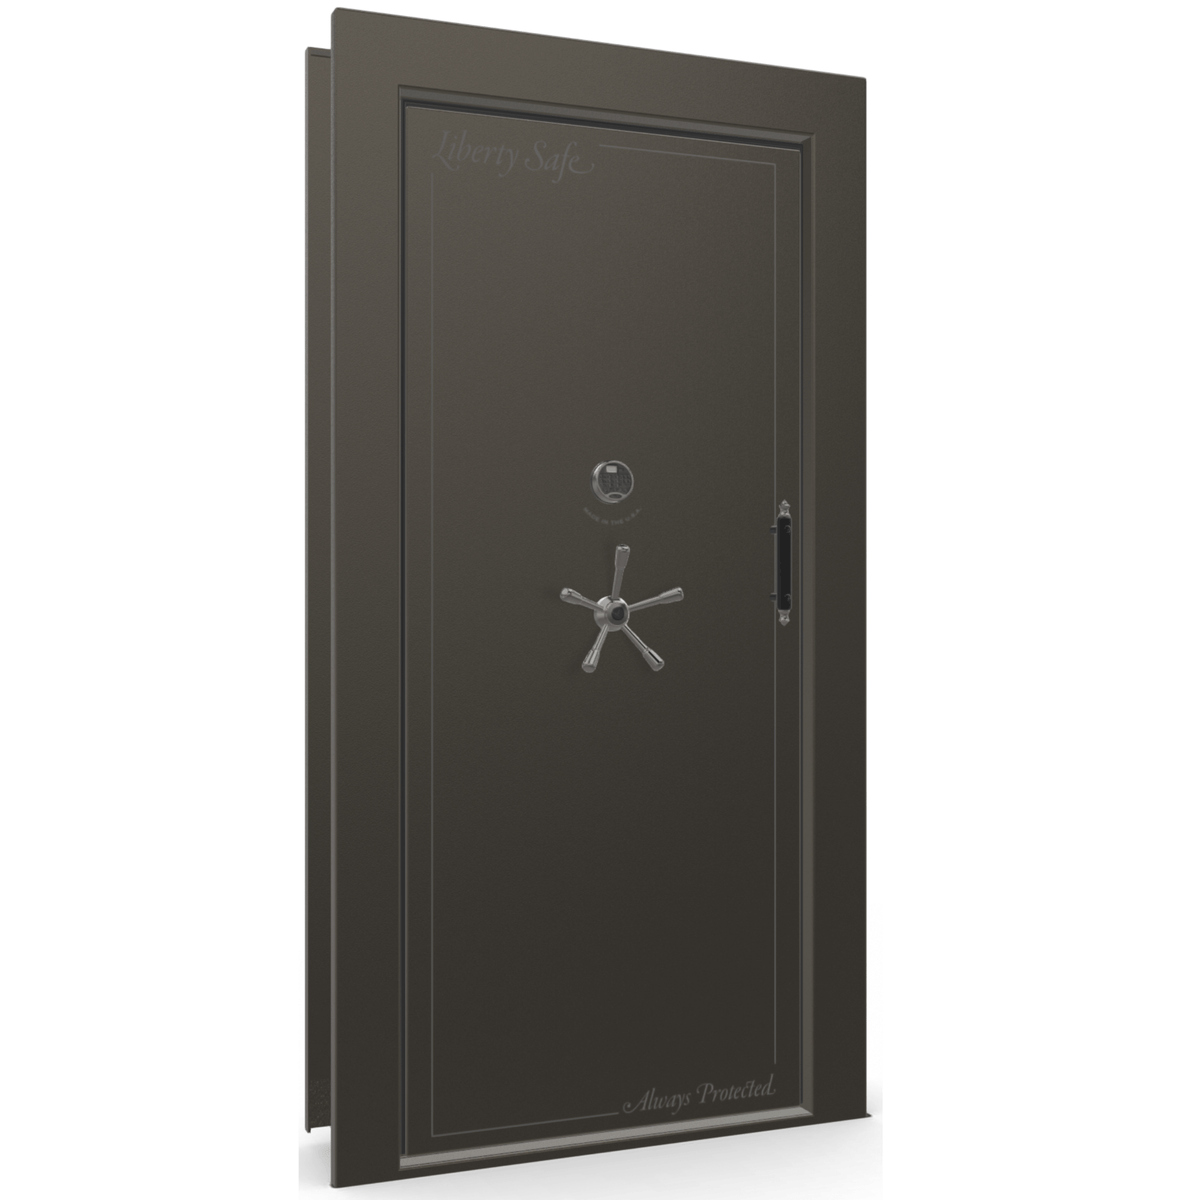 "Vault Door Left Inswing | Gray | Black Electronic Lock | 81-85""(H) x 27-42""(W) x 7-10""(D)"